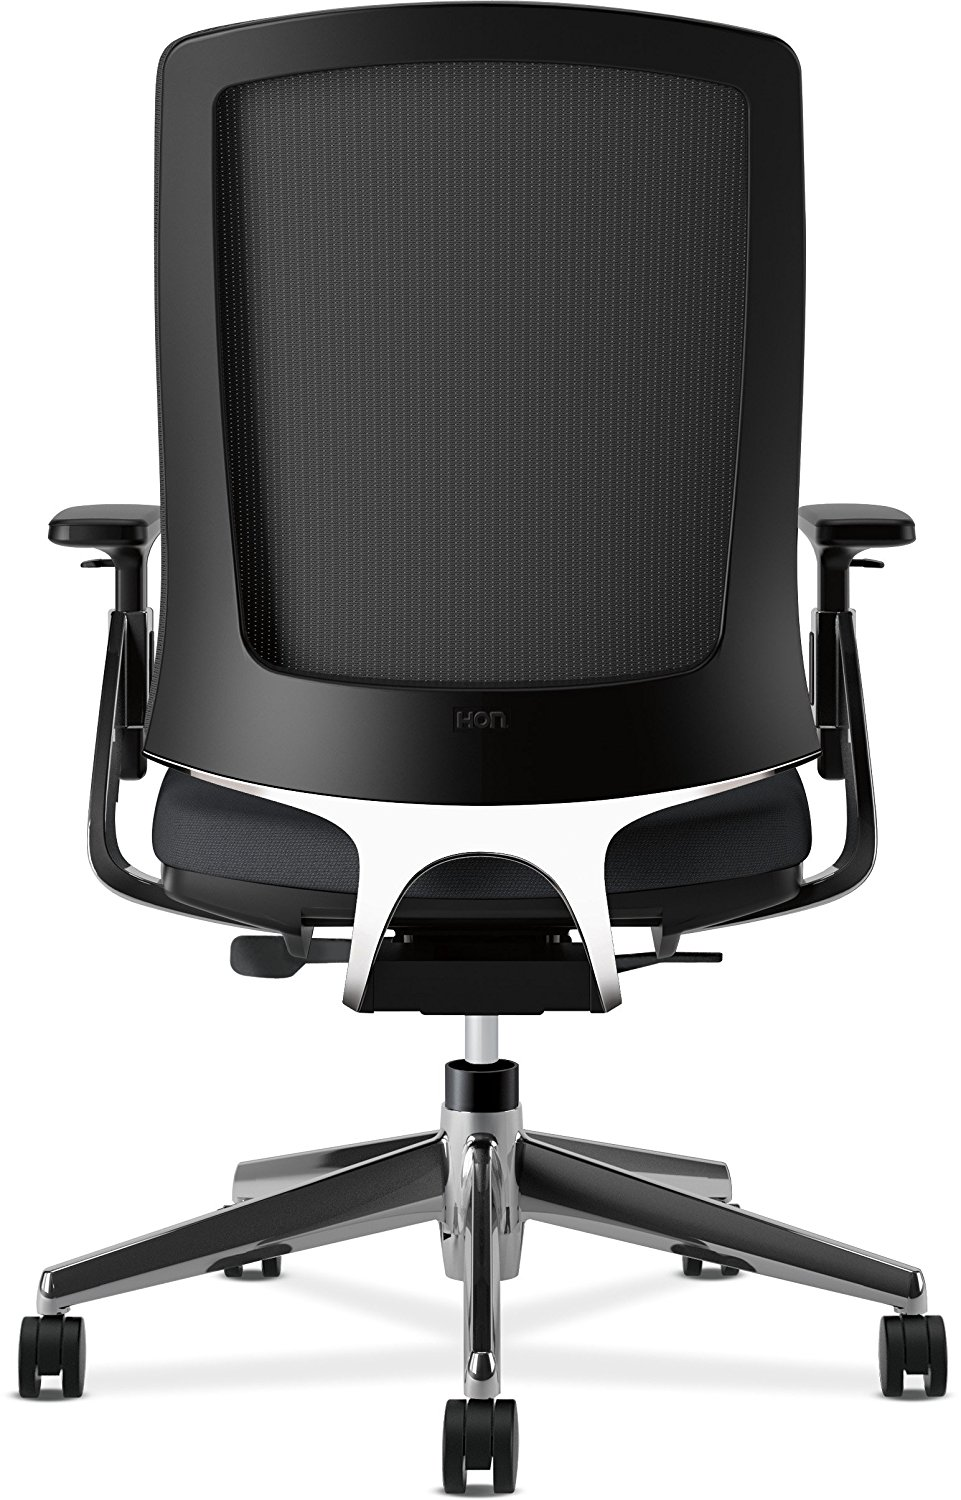 Another Potential Drawback To This Chair Is That Many Users Report The Seat Of Firmer Than Other Similar Office Chairs Thus Perhaps